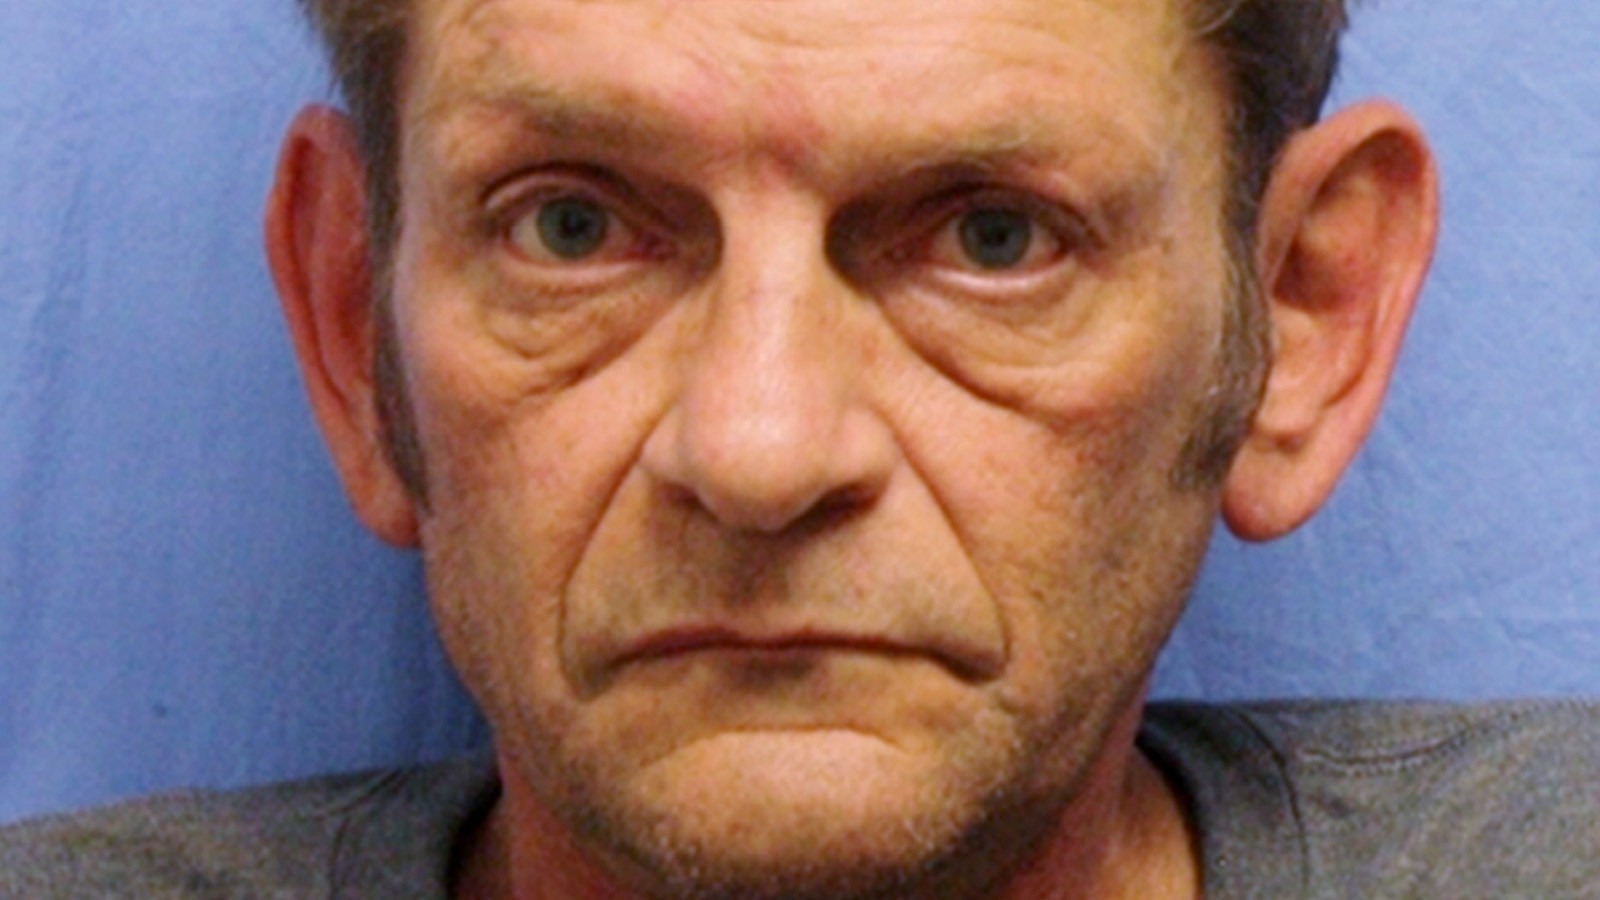 Man shouts 'get out of my country' before killing one man and injuring two at Kansas bar, witnesses say